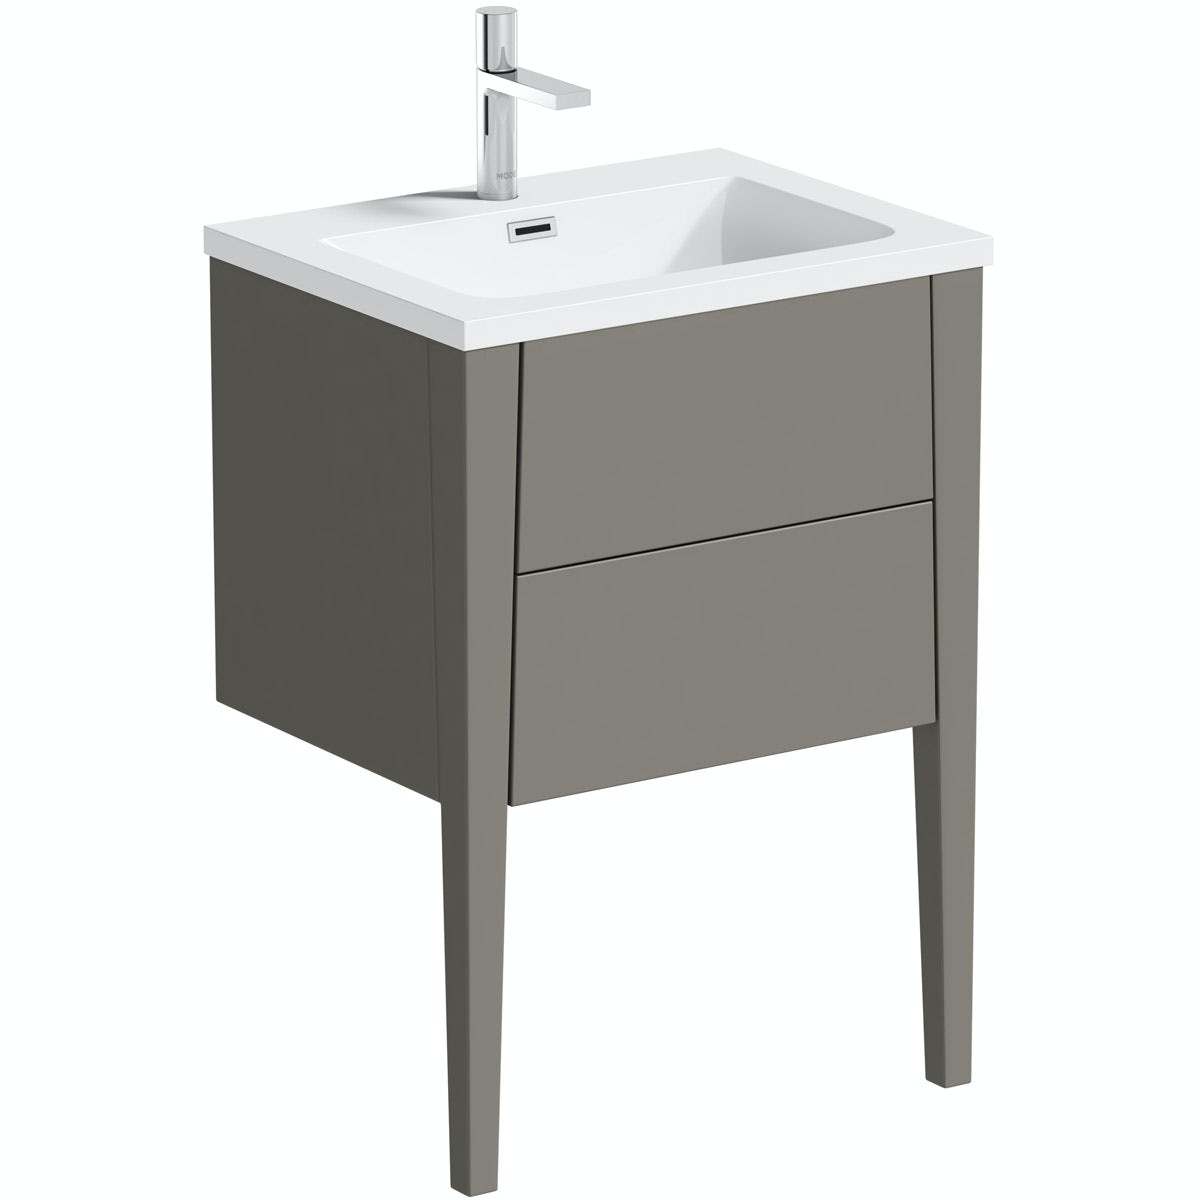 Mode Hale greystone matt vanity unit and basin 600mm